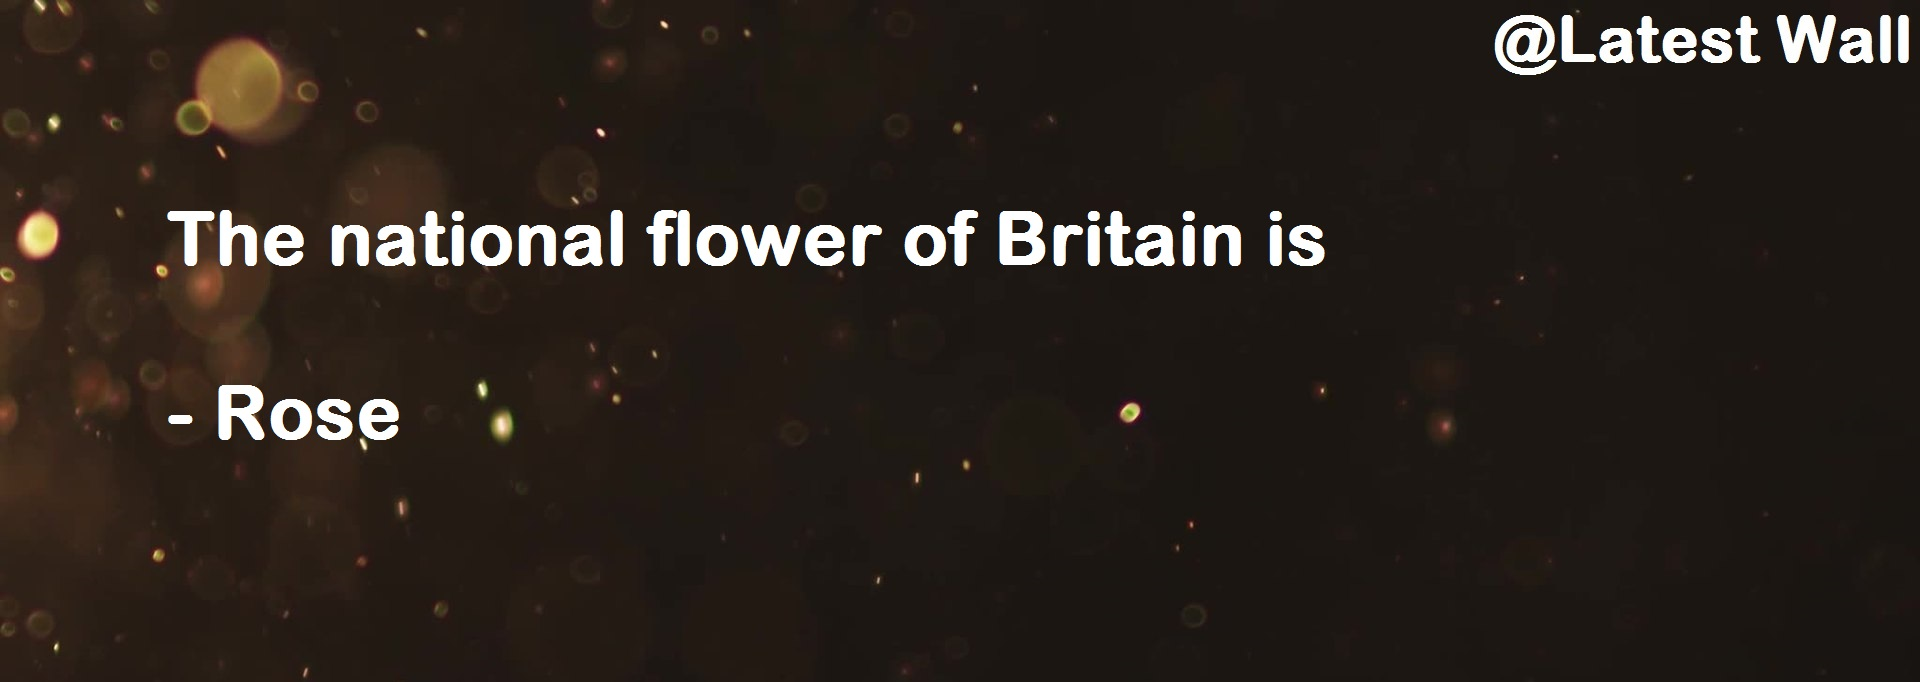 The national flower of Britain is